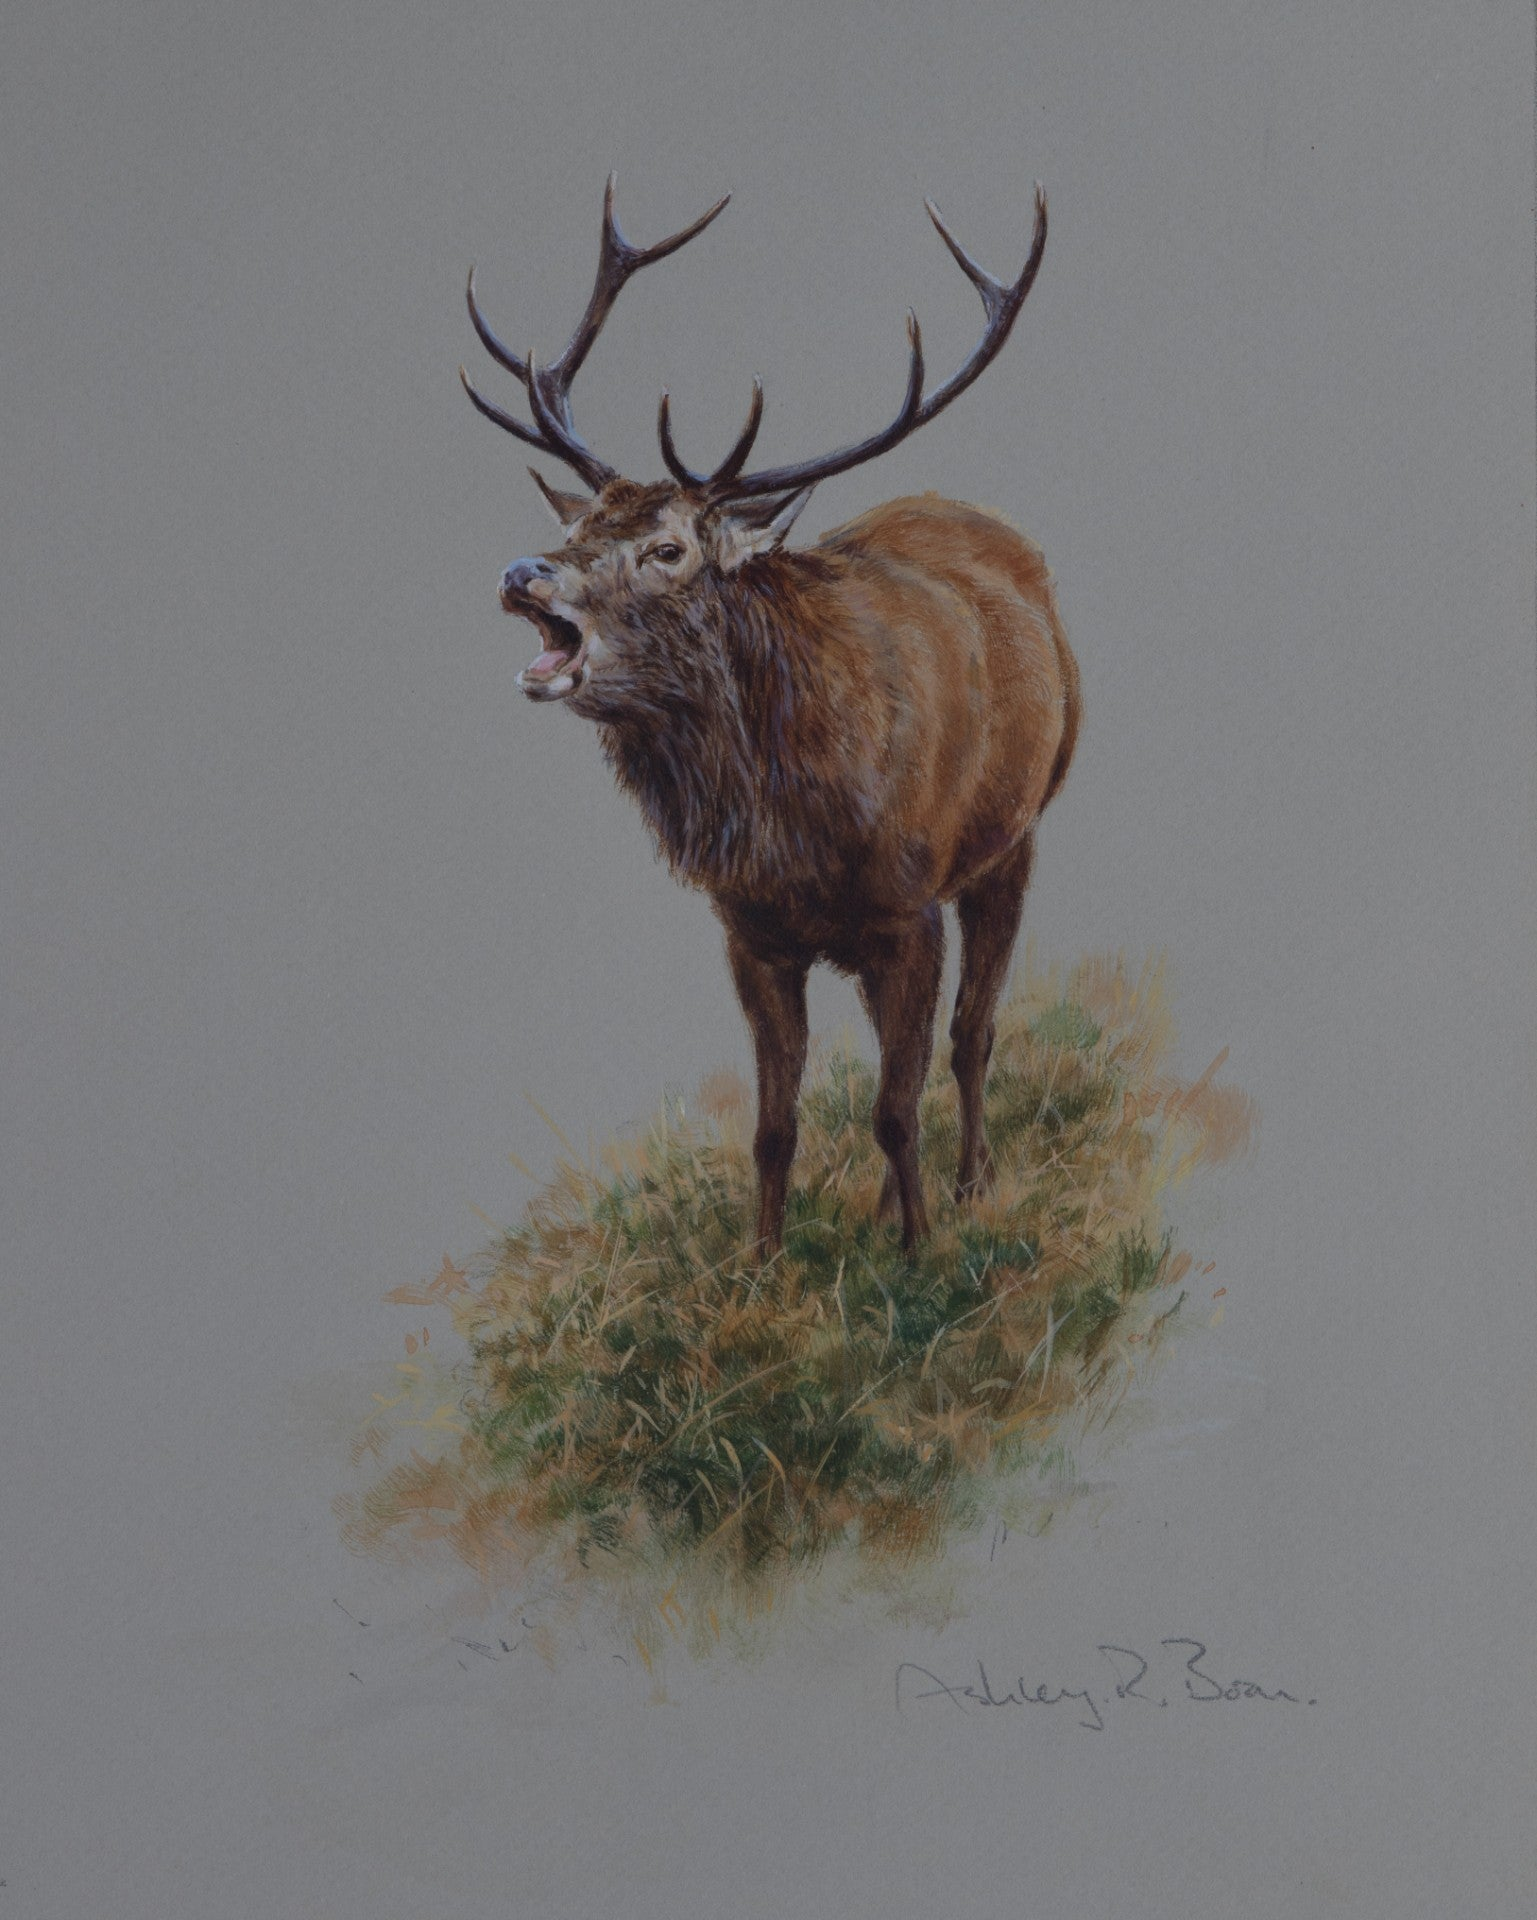 "'Roaring Stag' Original watercolour by Ashley Boon - 11"" x 8.5"""